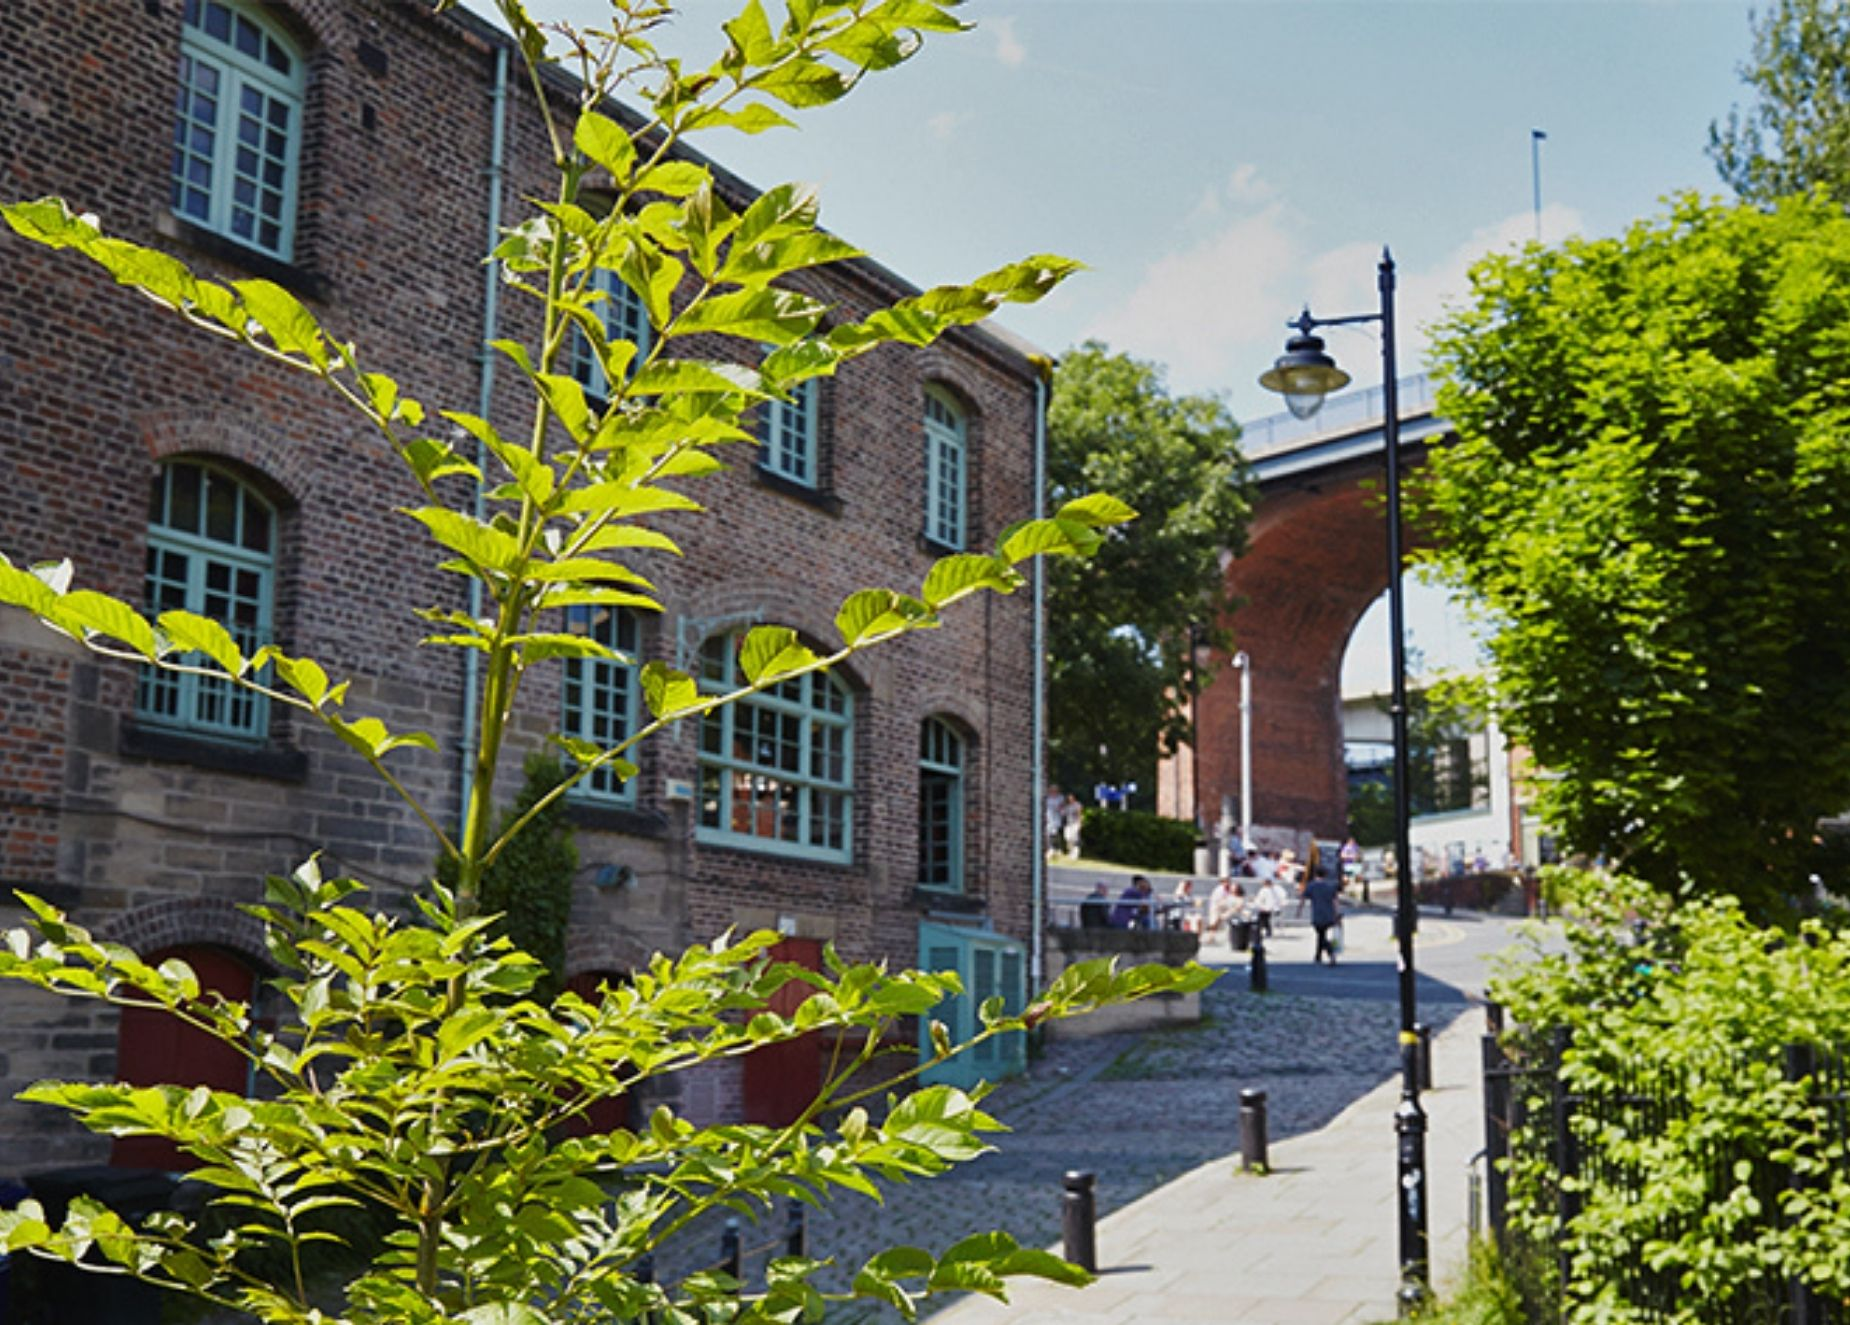 51 reasons to live in the Ouseburn Valley